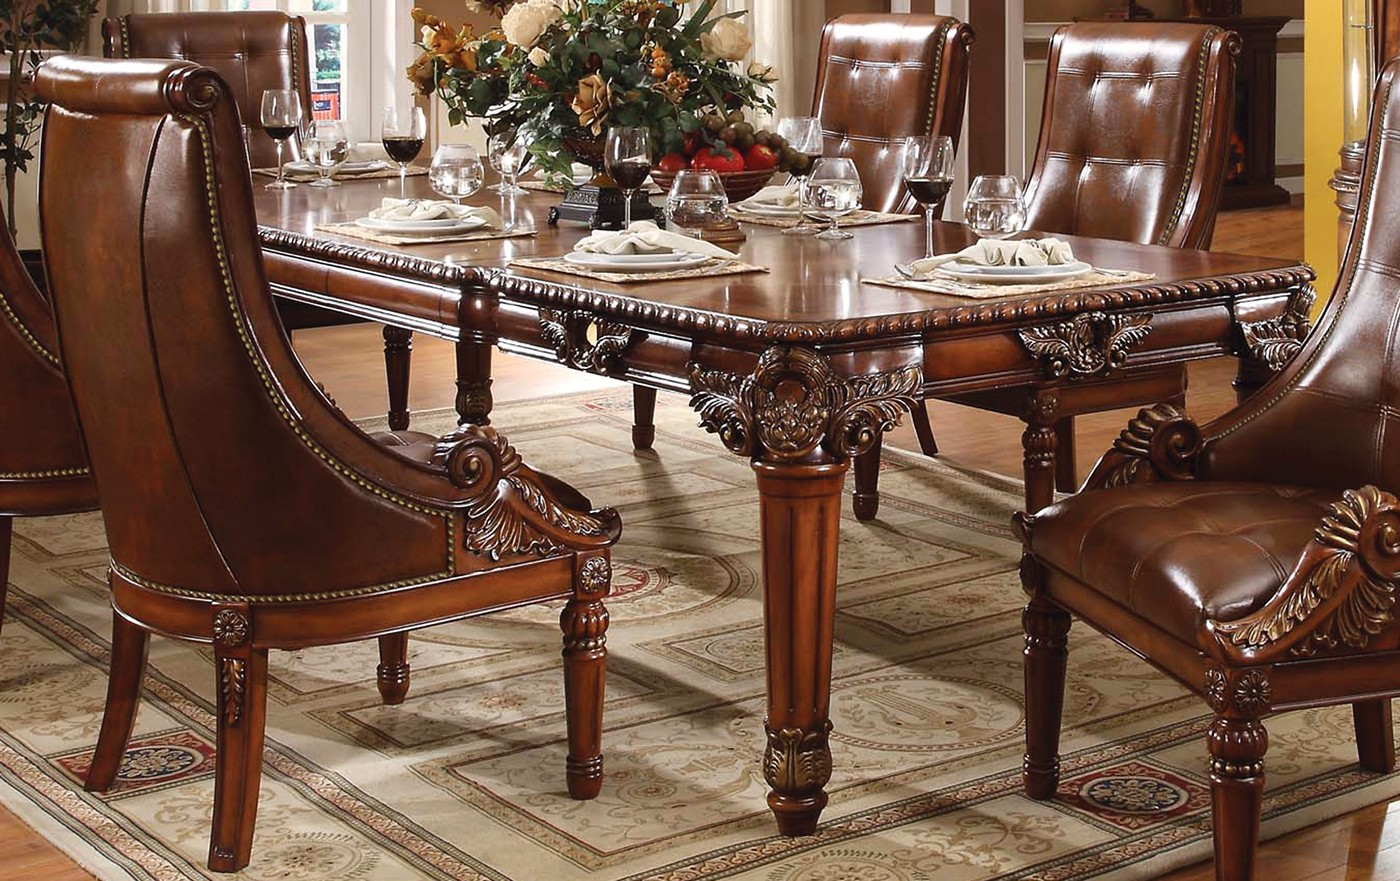 Greyson traditional 5 pc ornate 80 120 dining table set for Greyson dining table